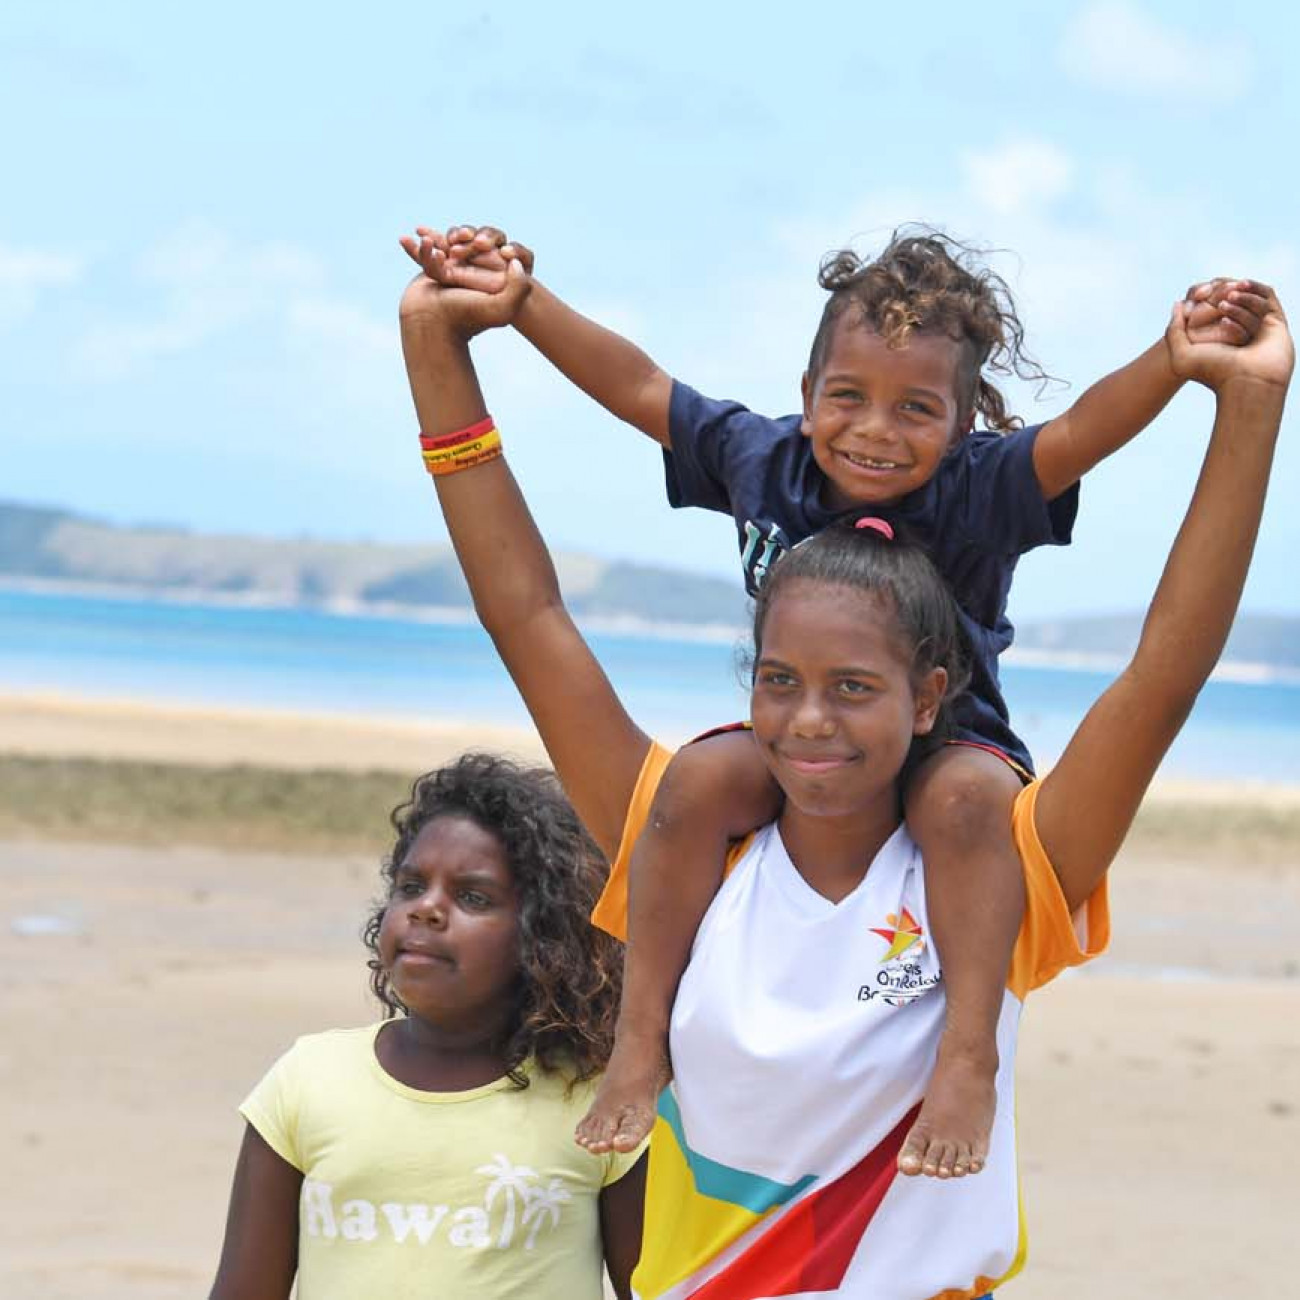 Batonbearer Ikanau Conway on the beach with local children at Palm Island